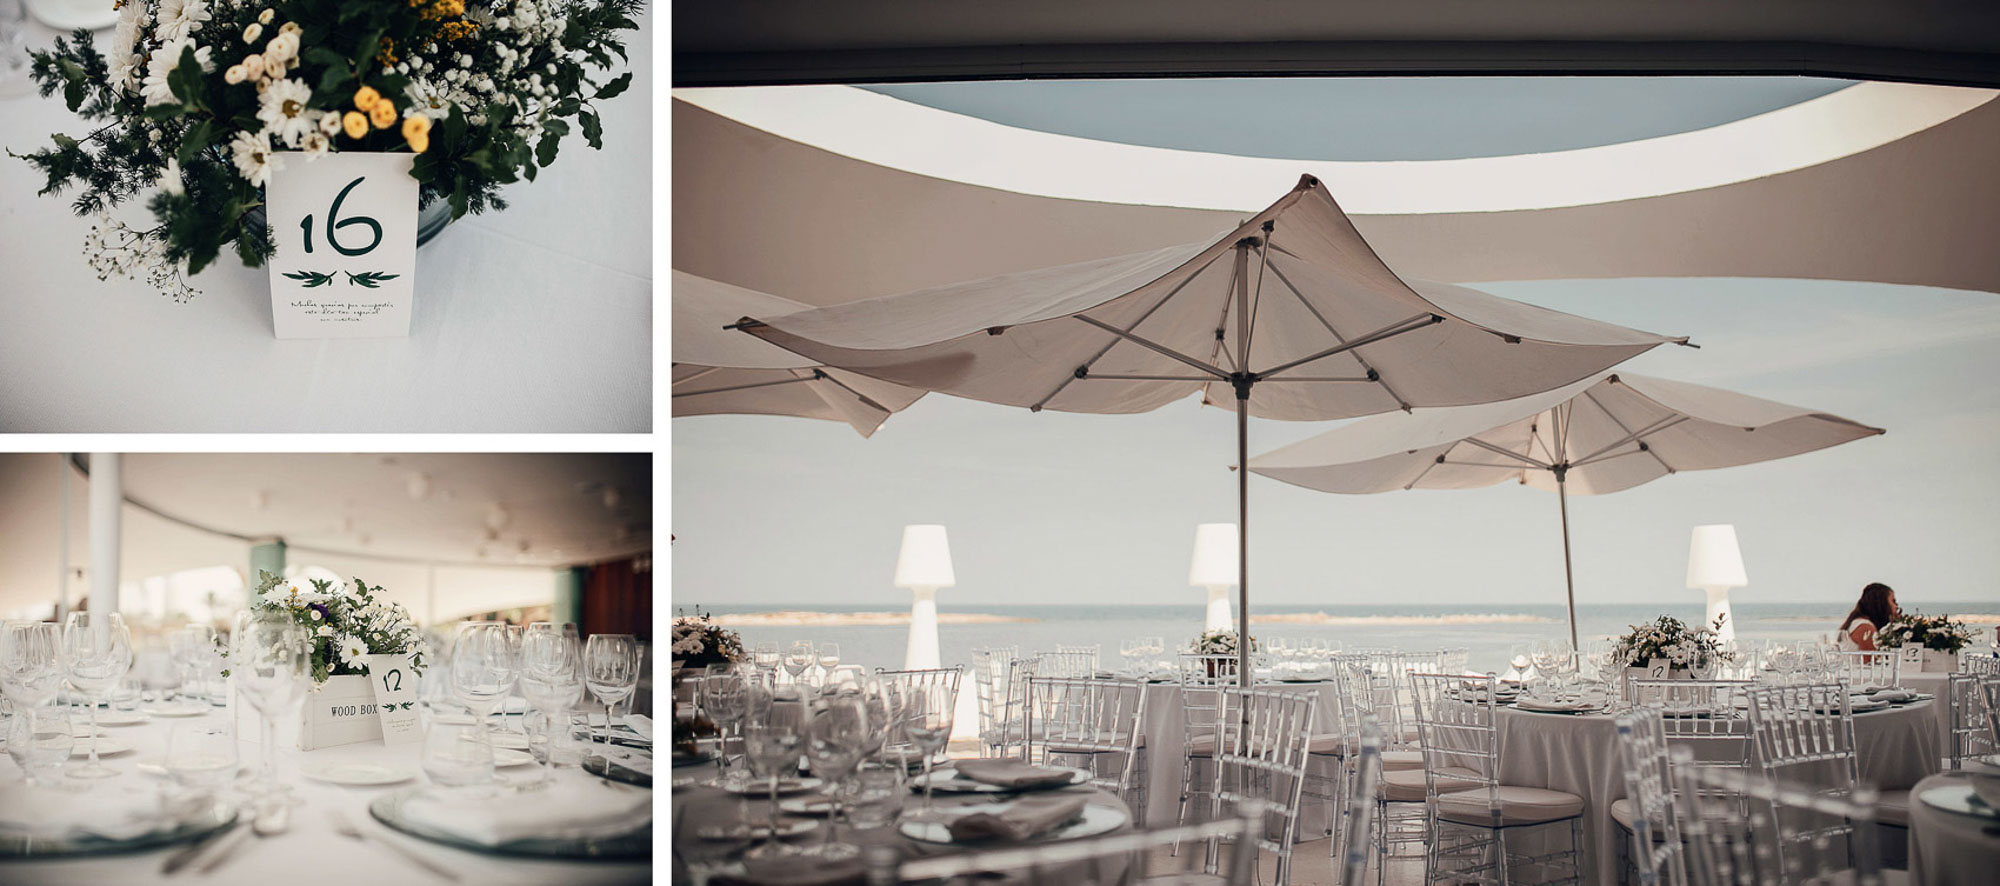 Decoración wedding valisse playa cabo de palos sombrillas mesas flores fotografia Collados restaurante